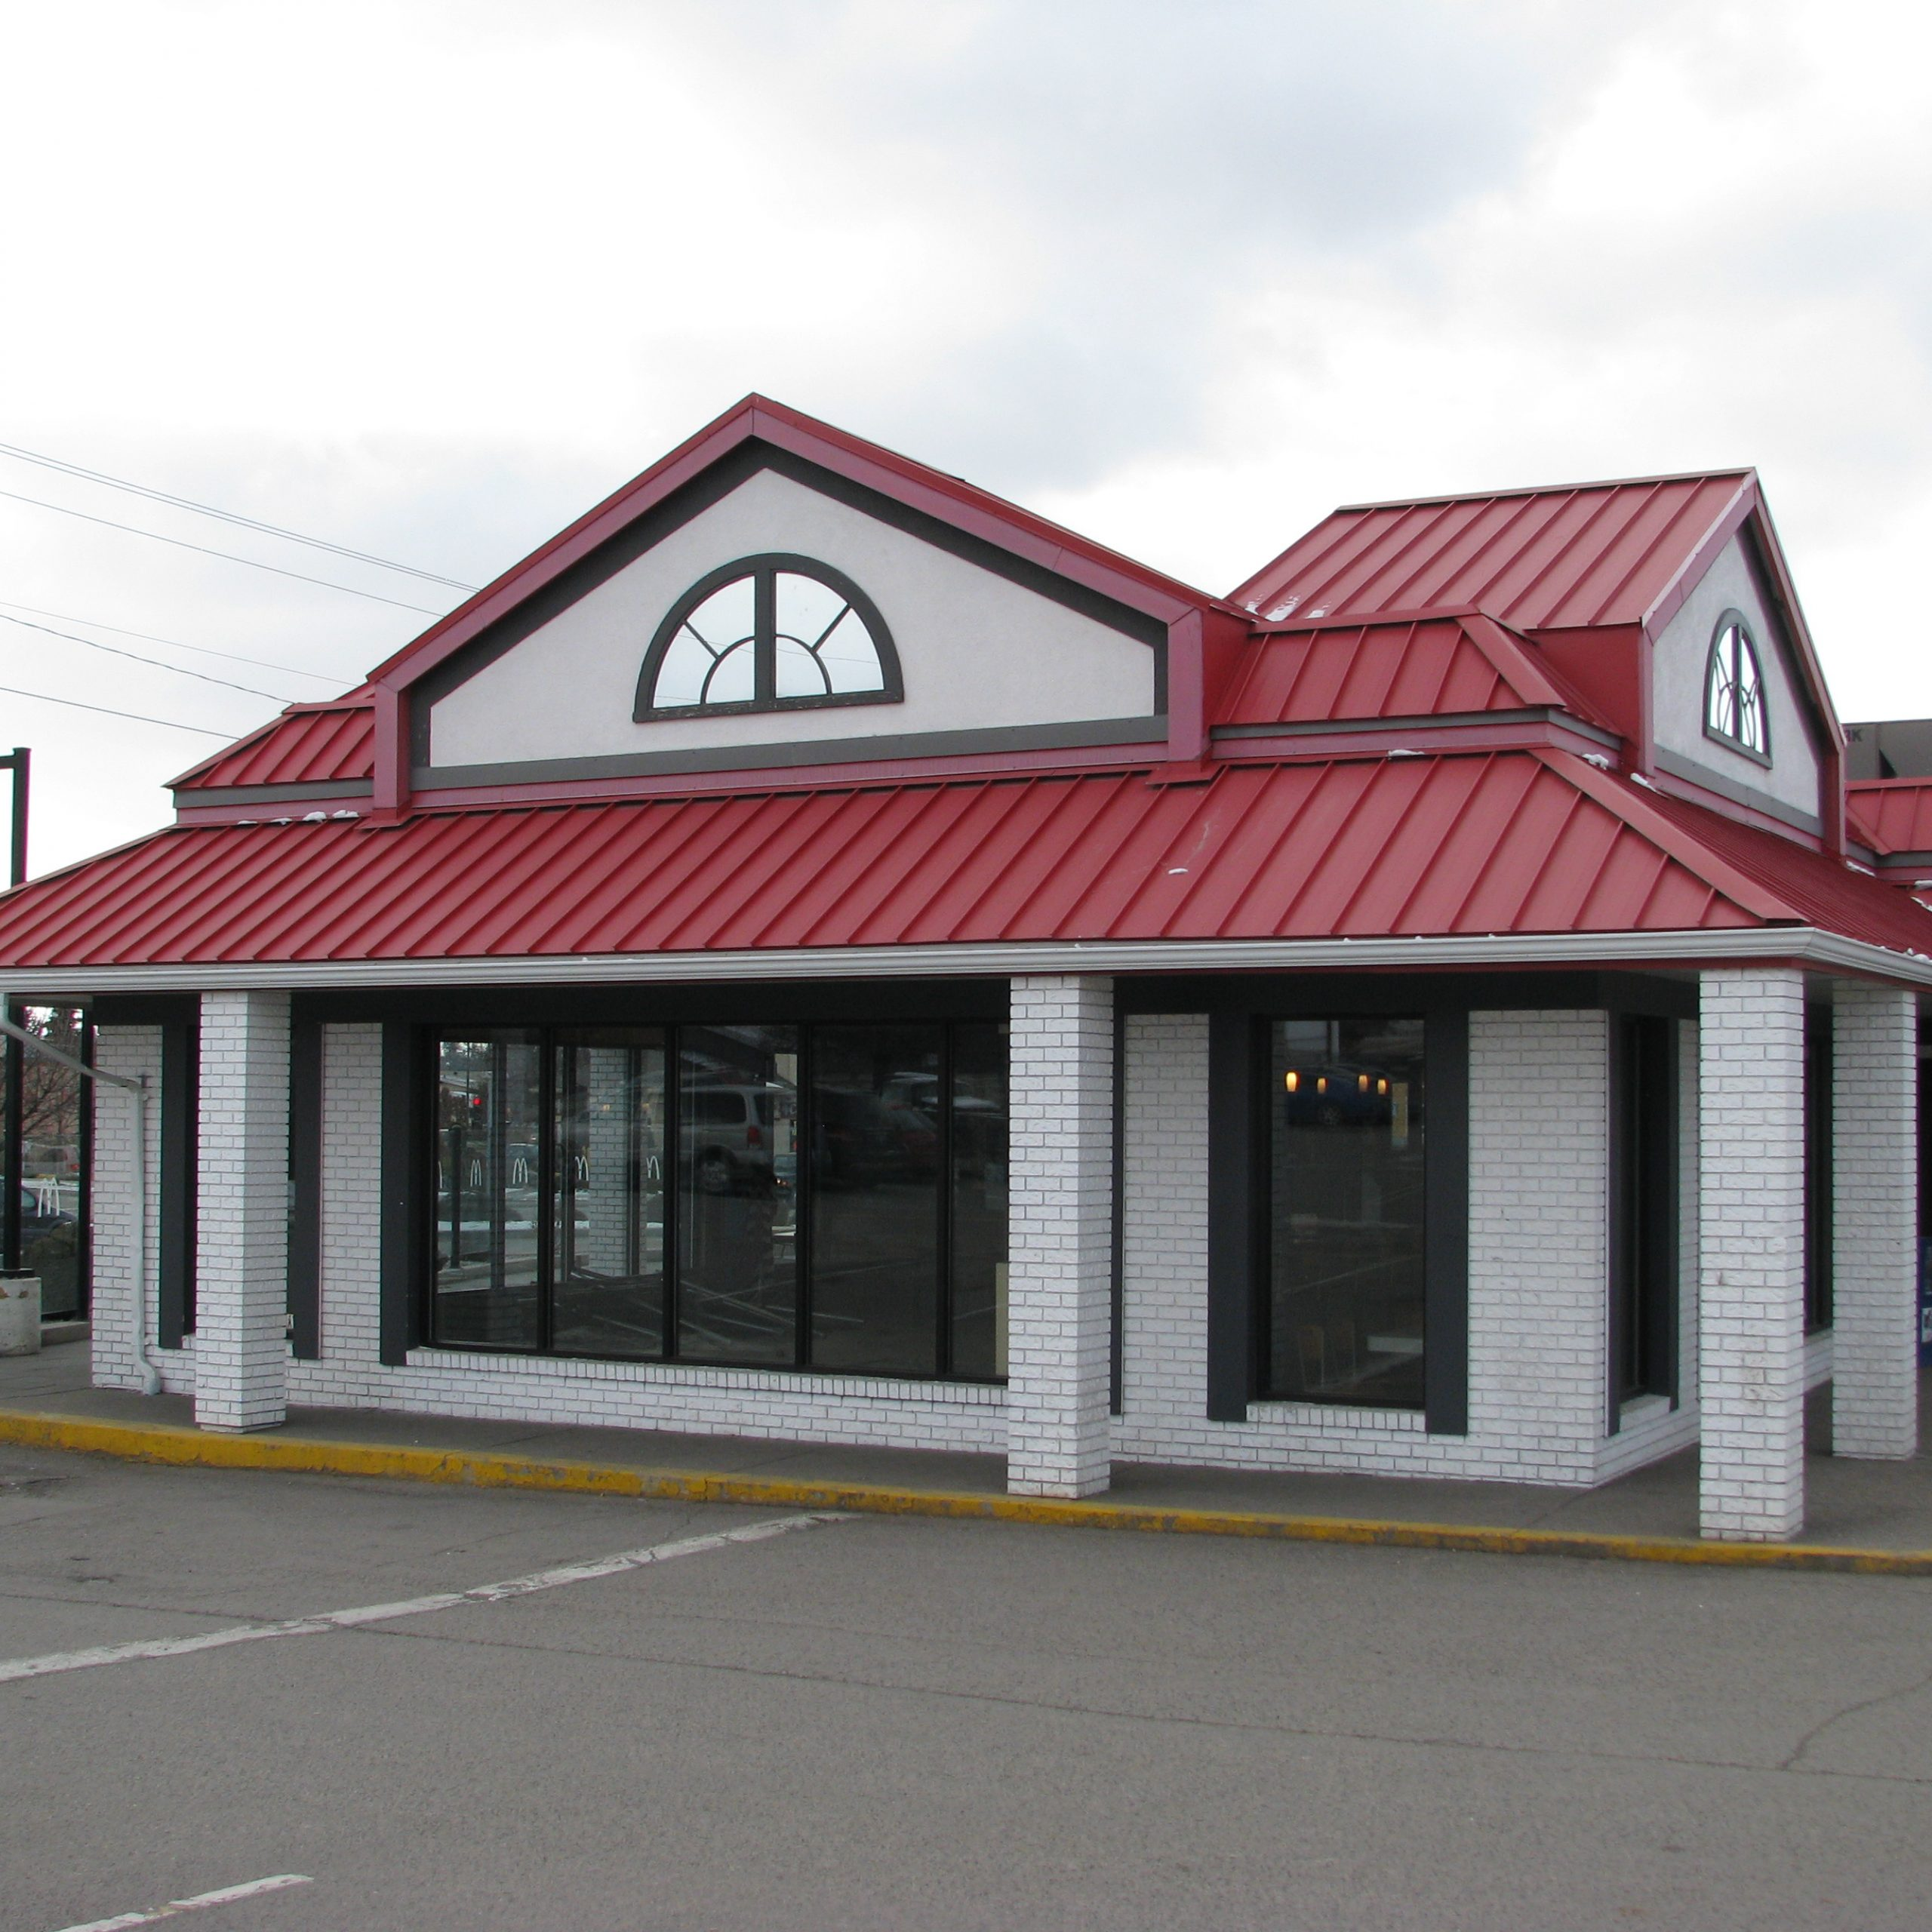 Rykon Commercial Building - McDonalds - Restaurant - Before